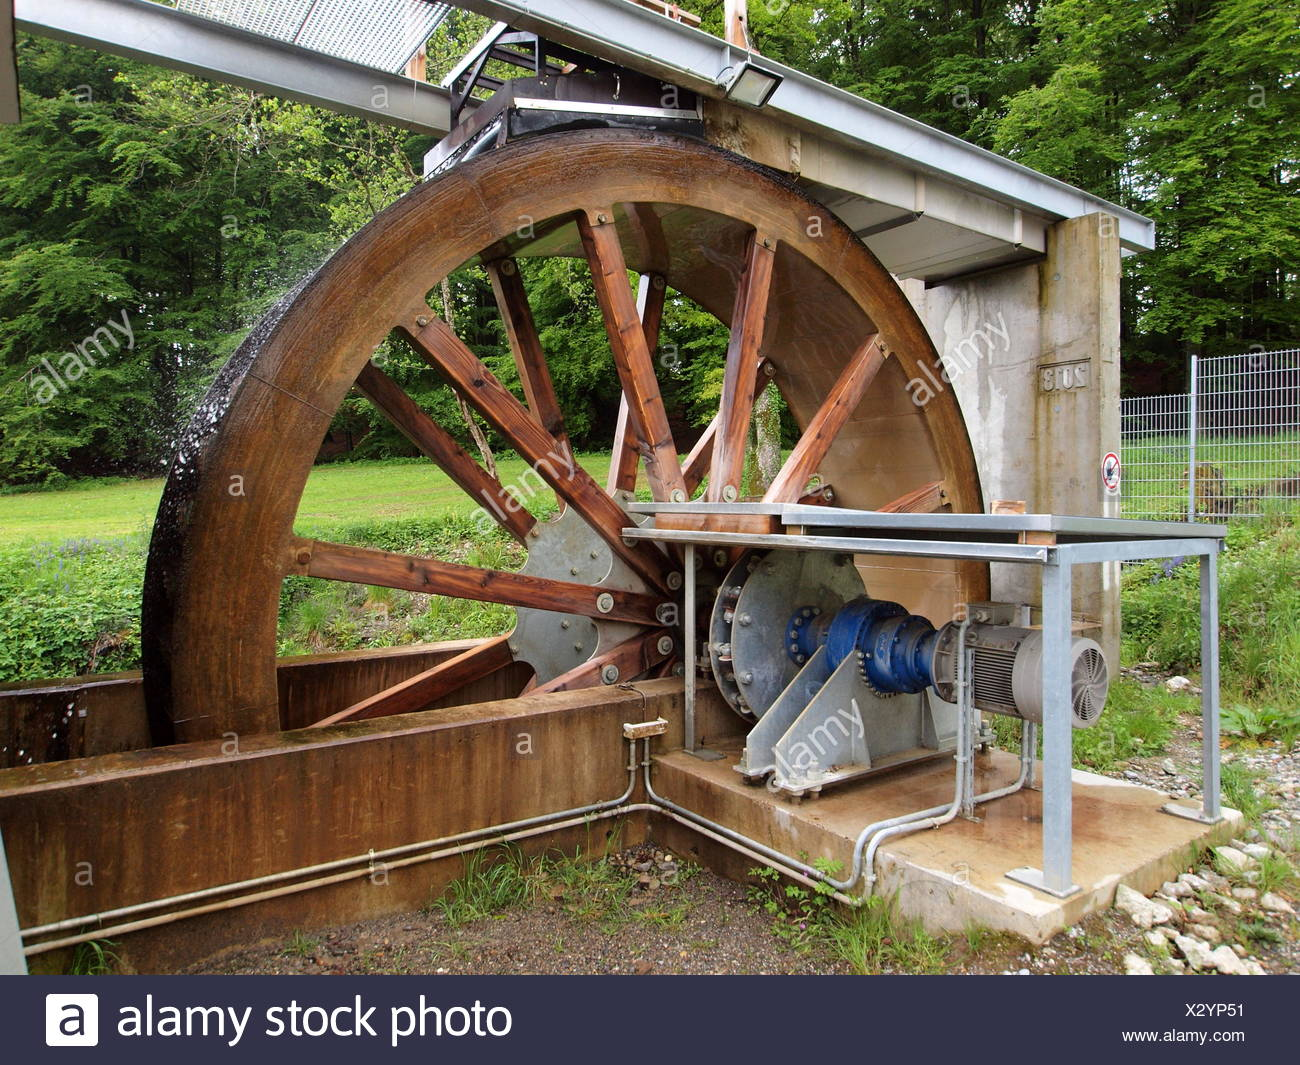 modern water wheel to generate electricity stock photo 277205293